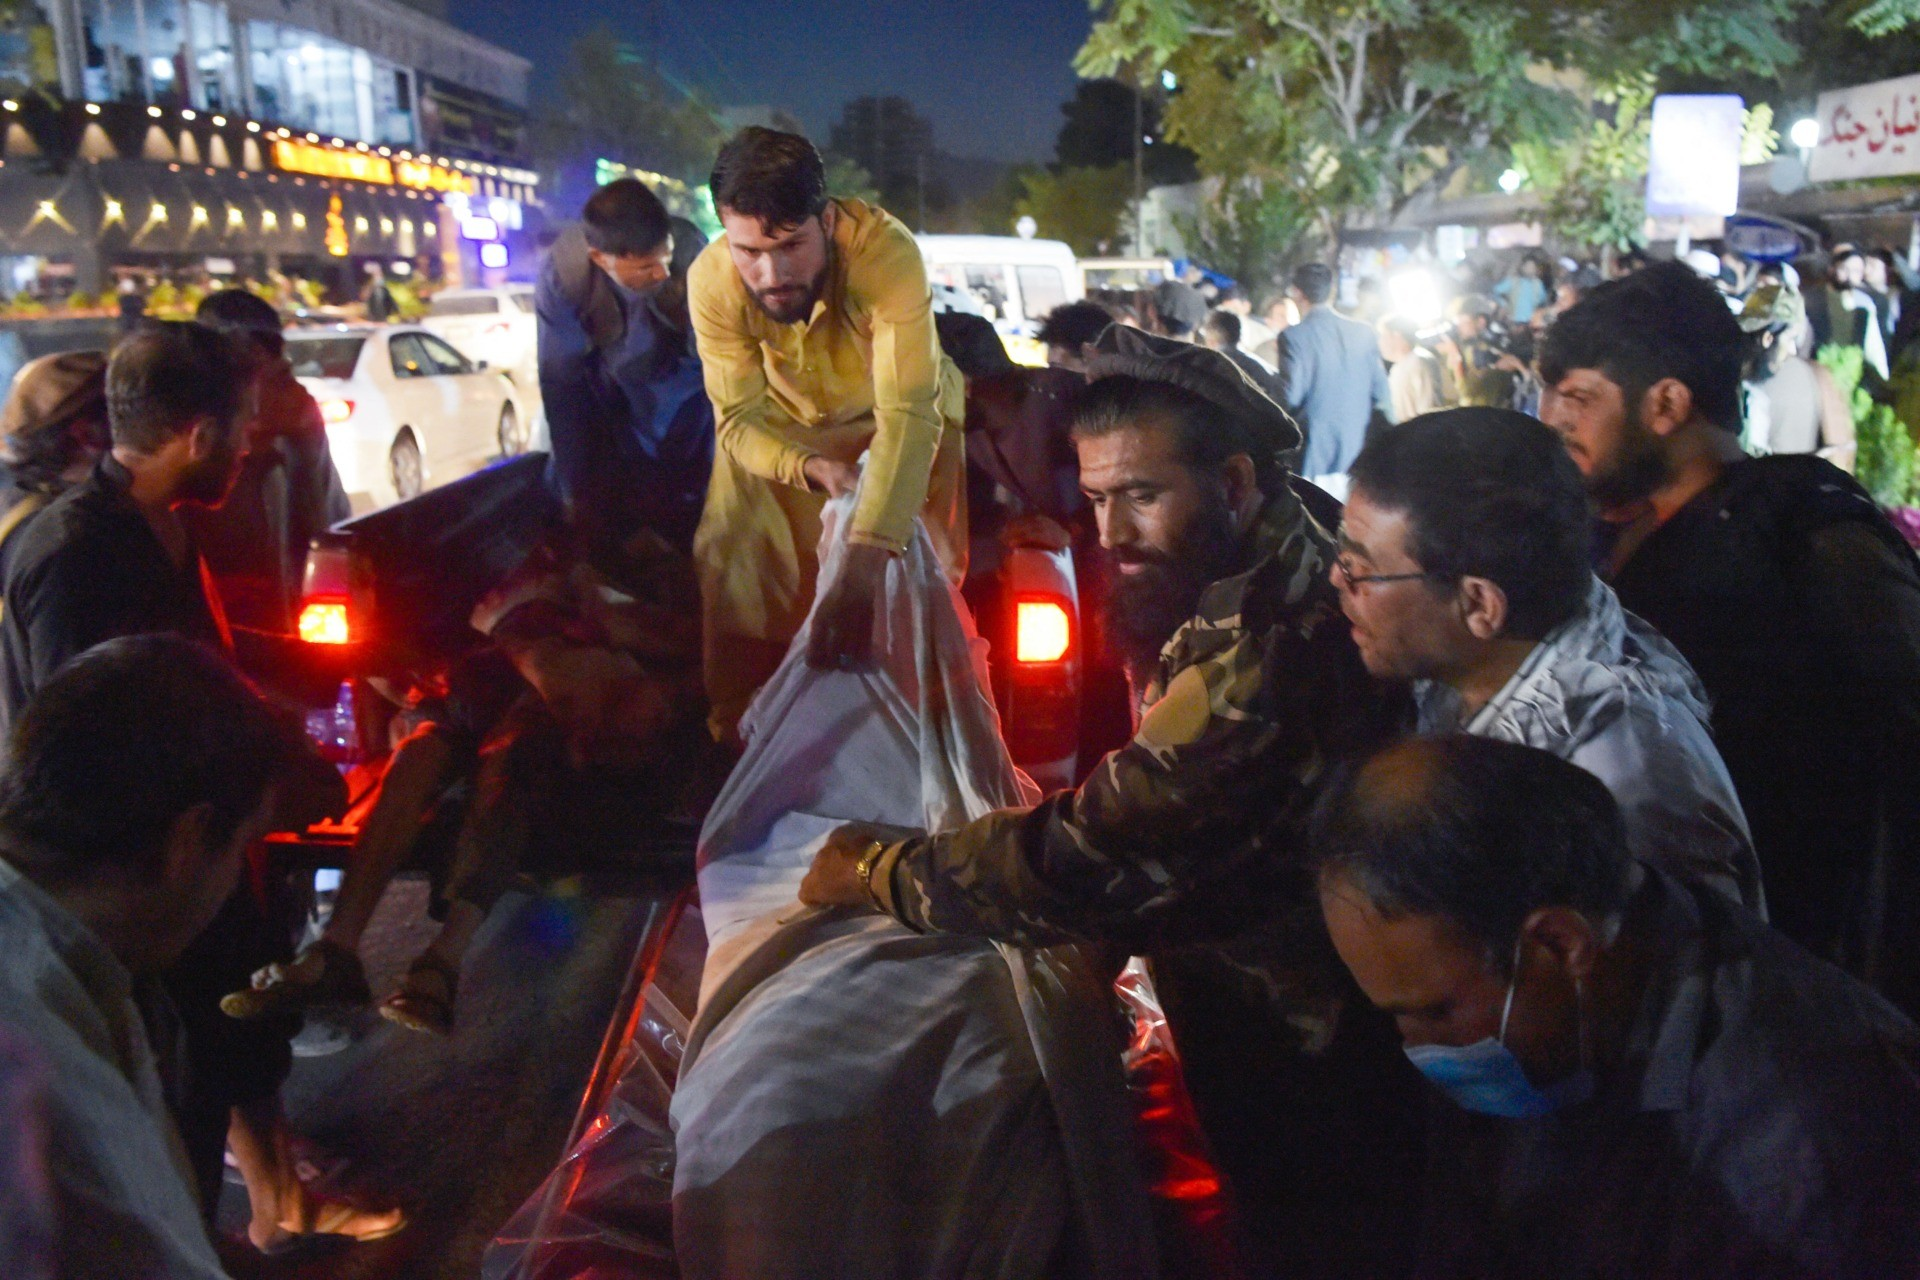 EDITORS NOTE: Graphic content / TOPSHOT - Volunteers and medical staff unload bodies from a pickup truck outside a hospital after two powerful explosions, which killed at least six people, outside the airport in Kabul on August 26, 2021. (Photo by Wakil KOHSAR / AFP) (Photo by WAKIL KOHSAR/AFP via Getty Images)